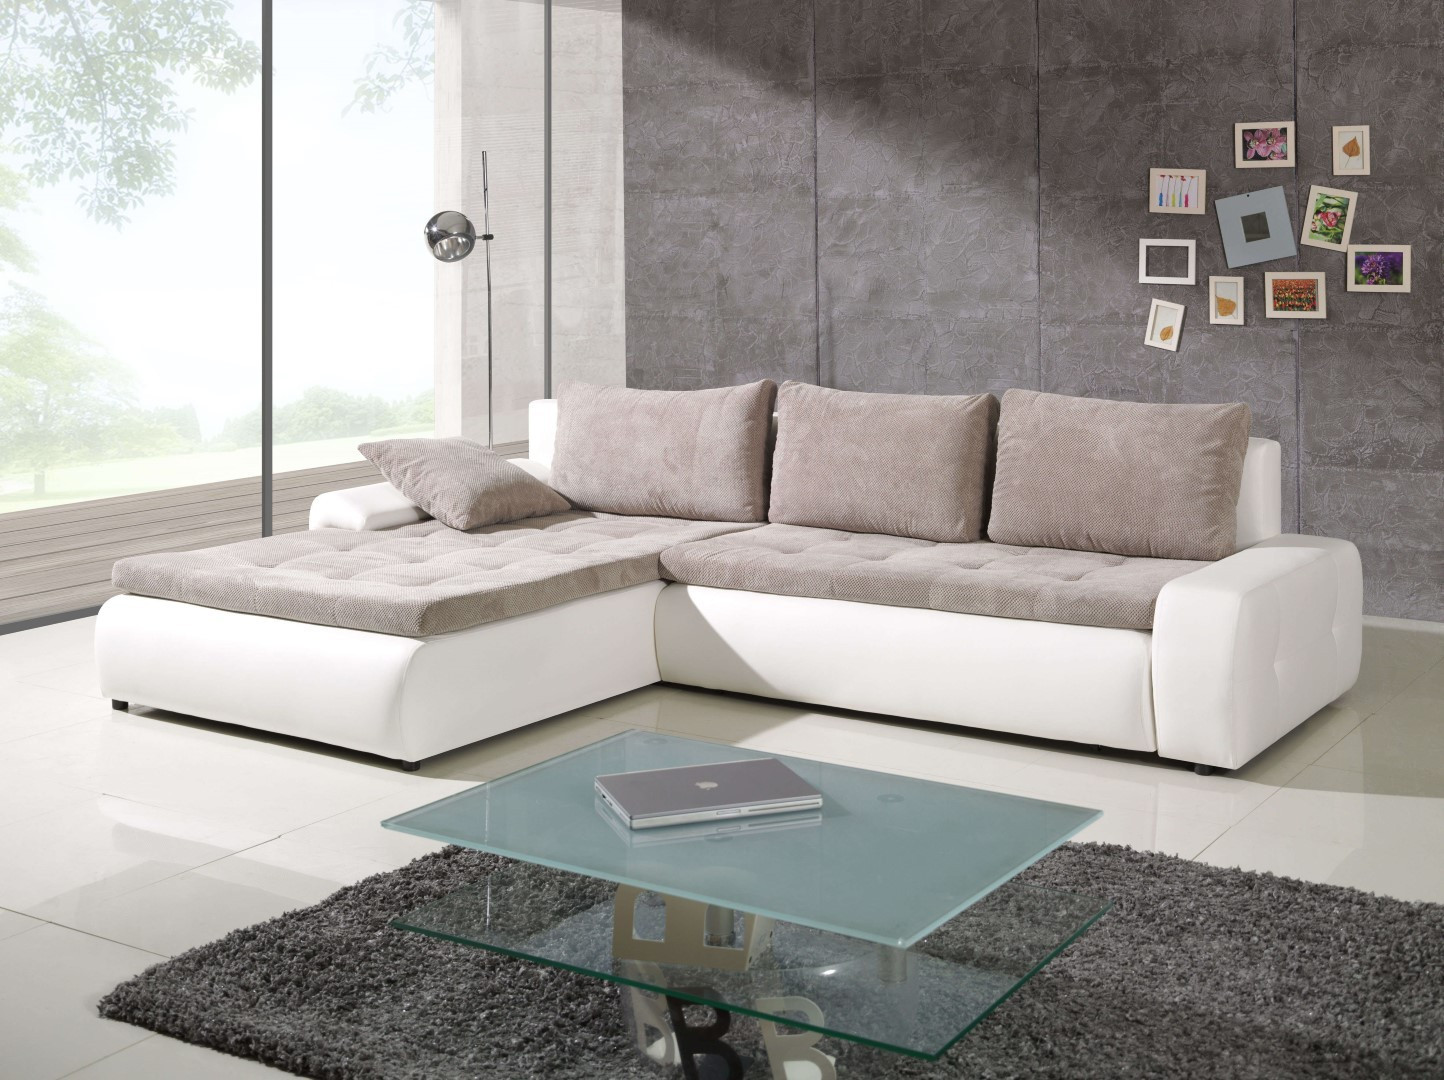 Best ideas about Sofa Sleeper Sectional . Save or Pin Shop Galileo Sectional Sleeper Sofa with Storage Universal Now.